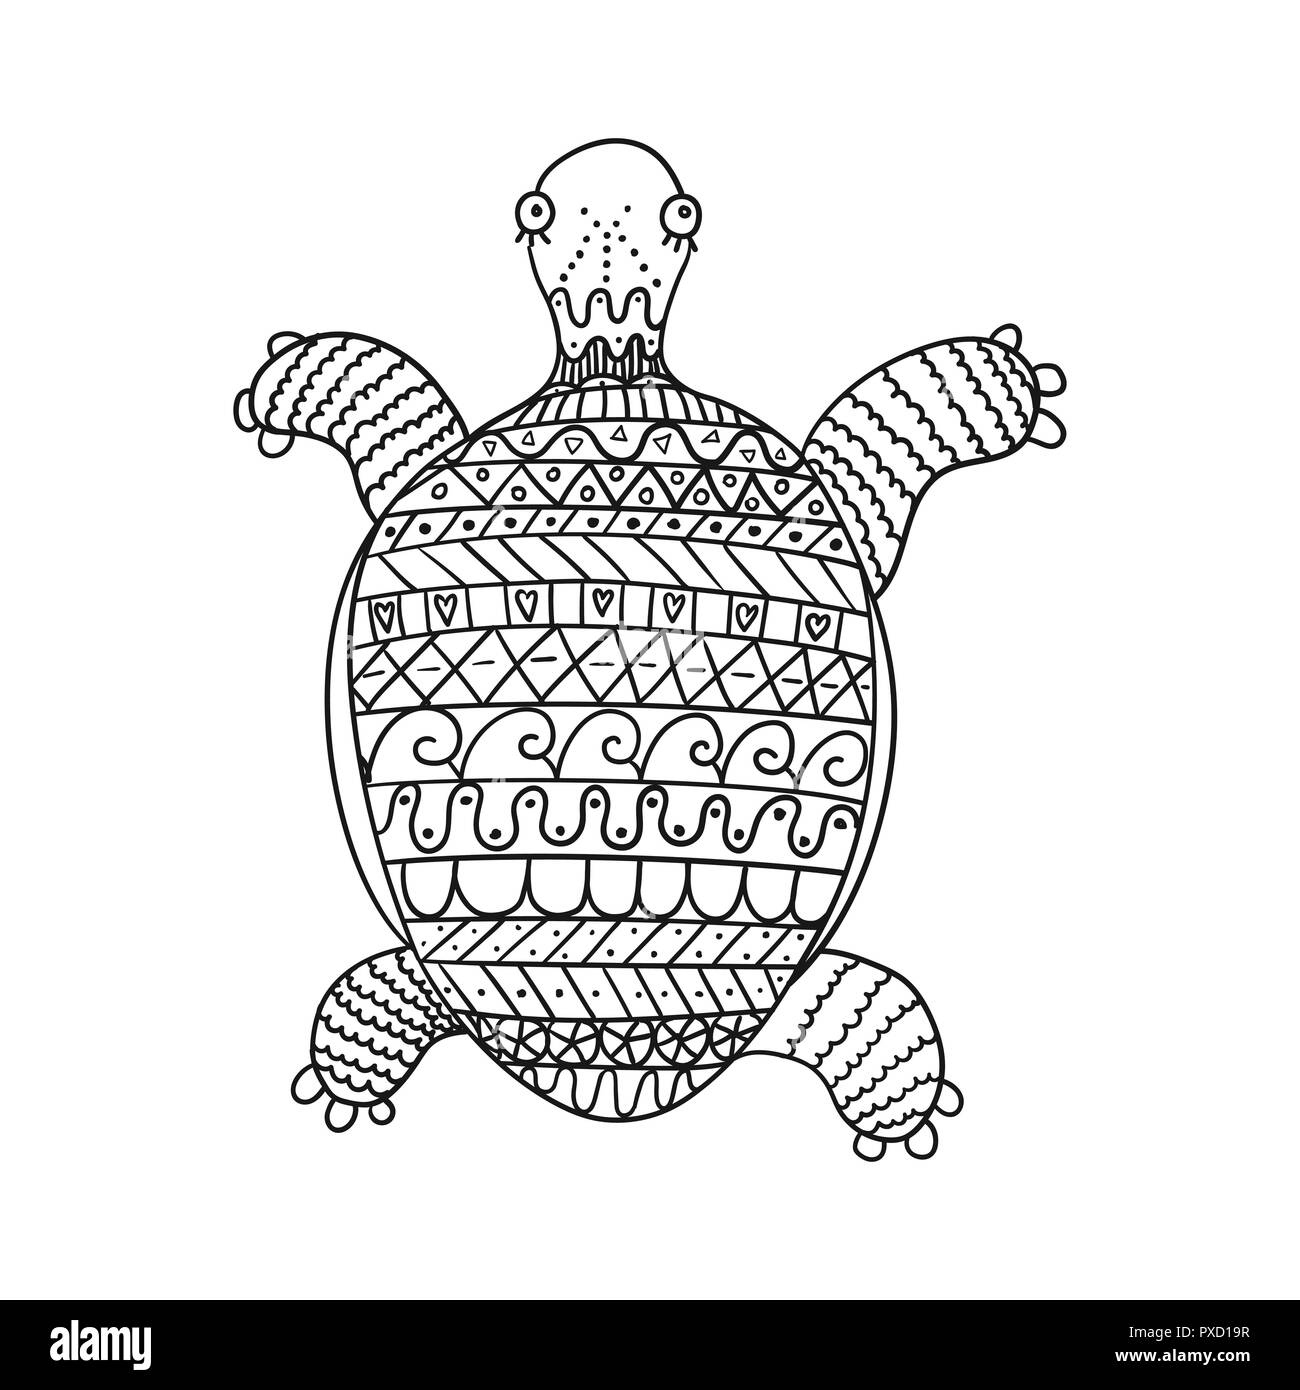 Turtle Cartoon Black And White Stock Photos Amp Images